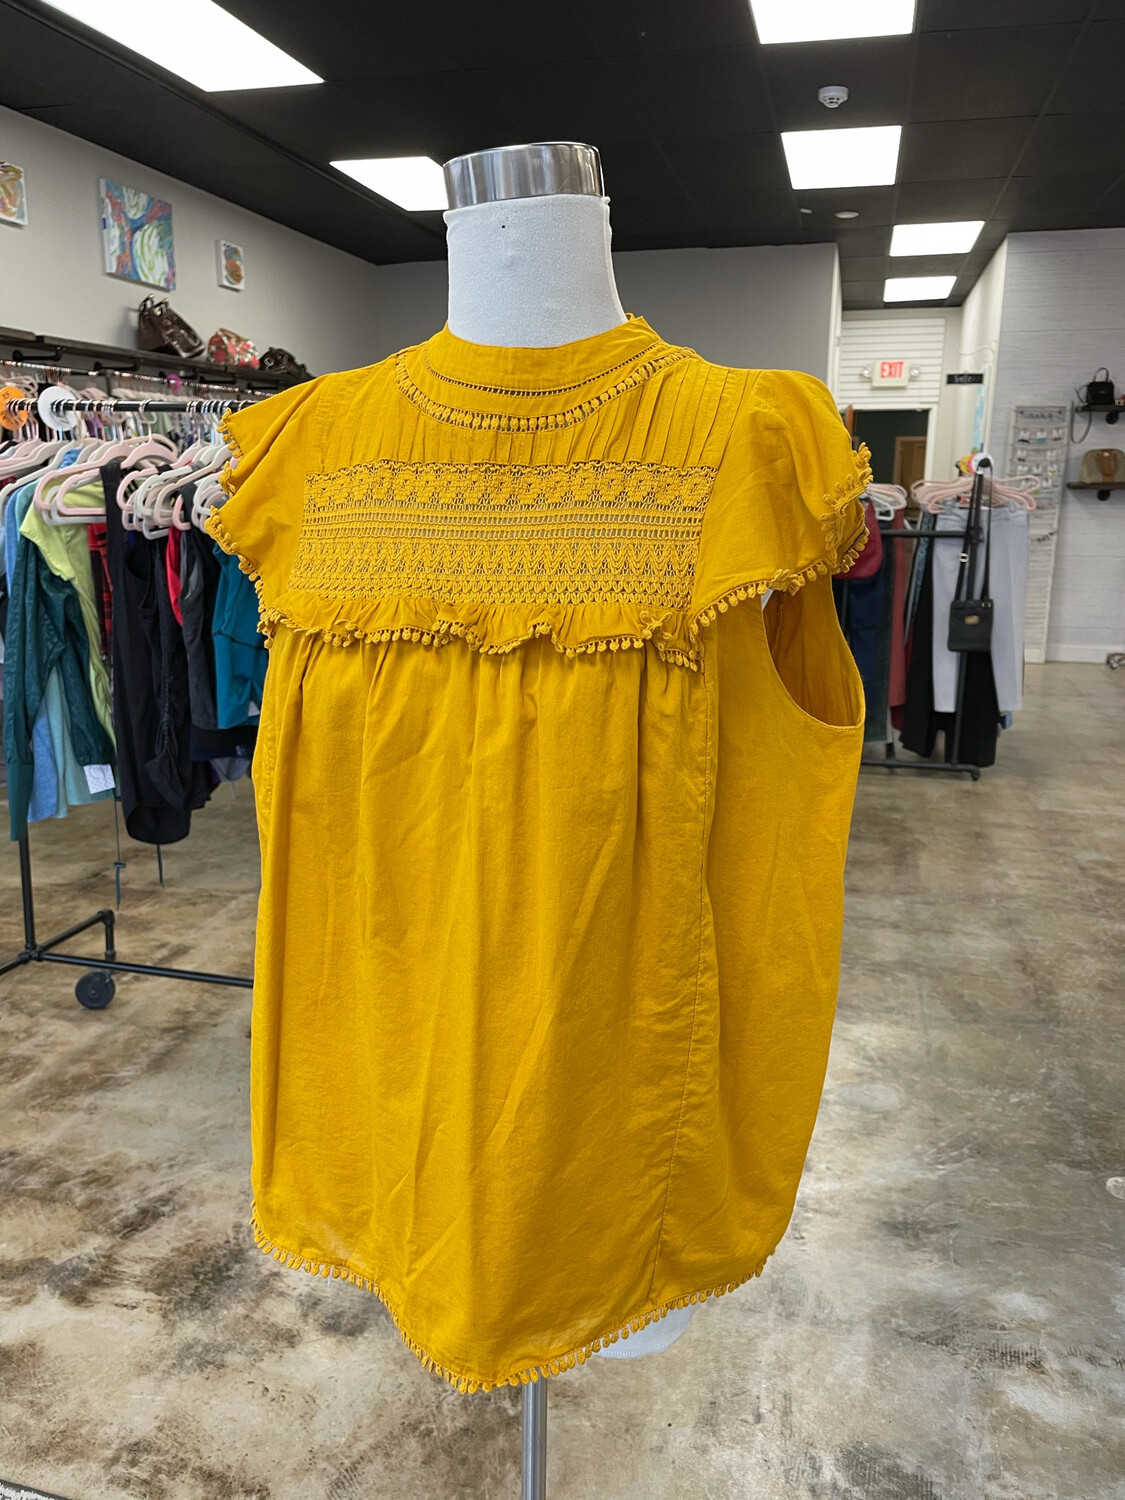 J. Crew Mustard Embroidered Top - L